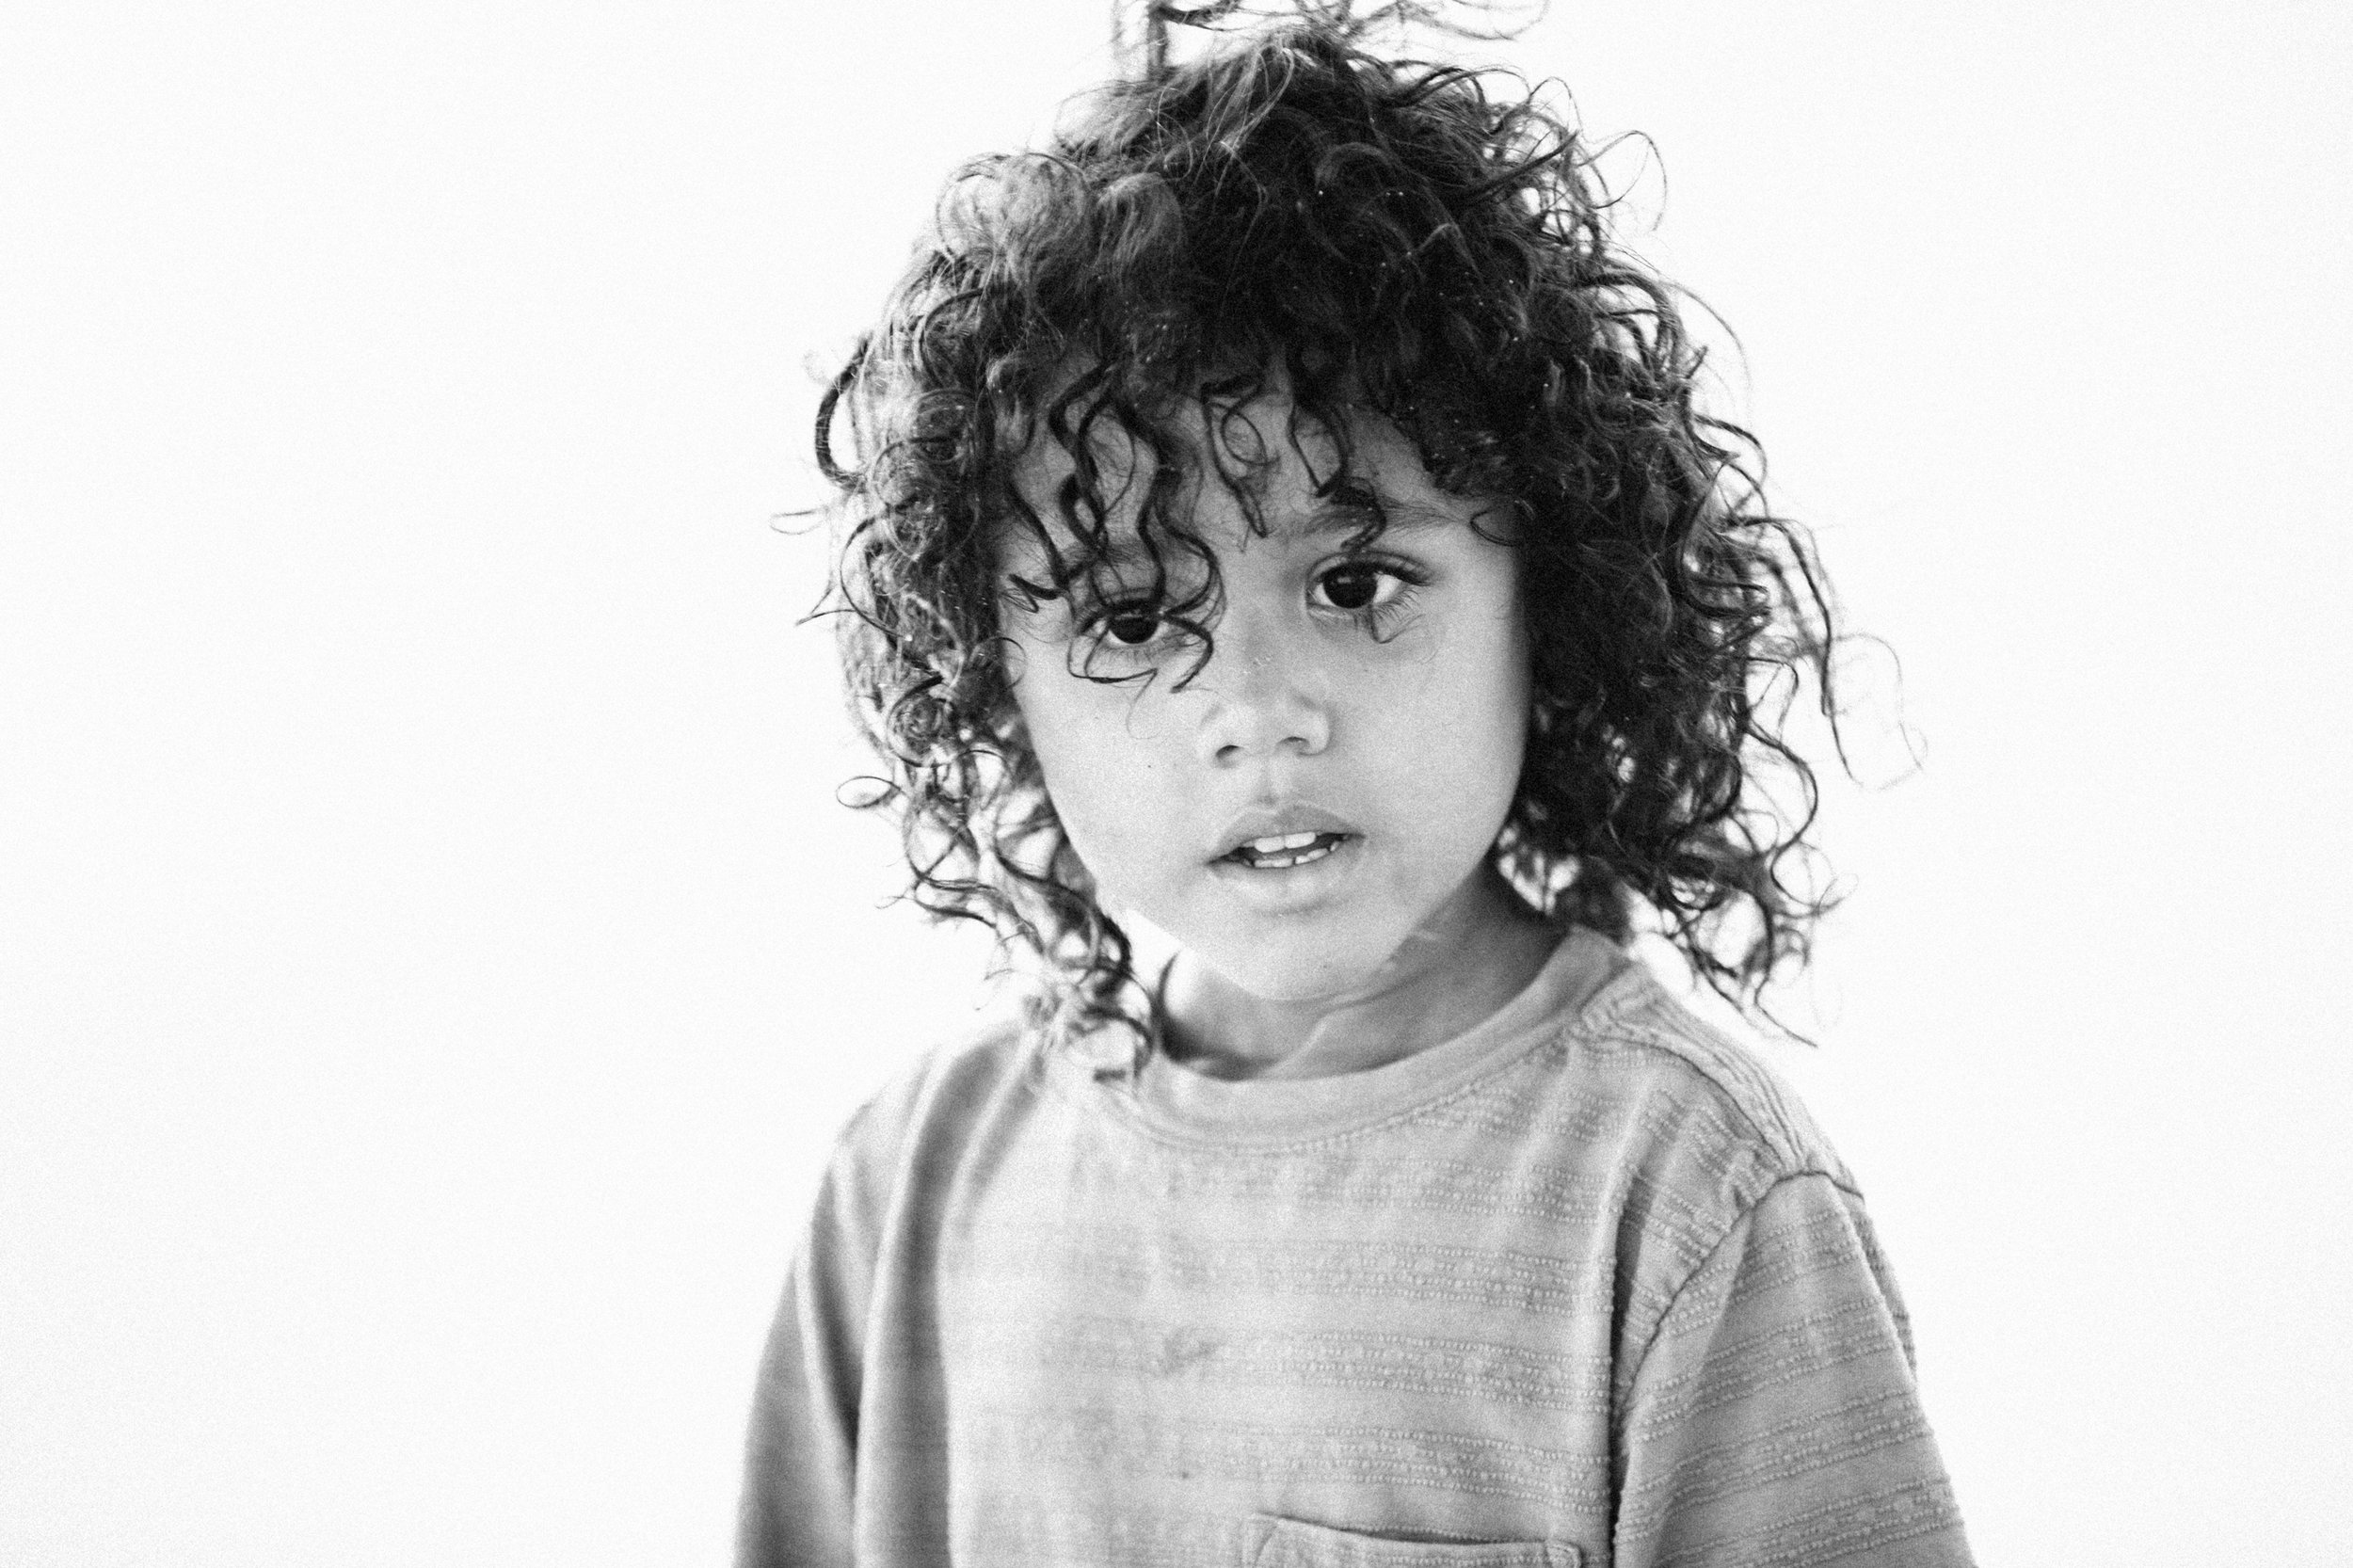 Children's portrait photographer LA